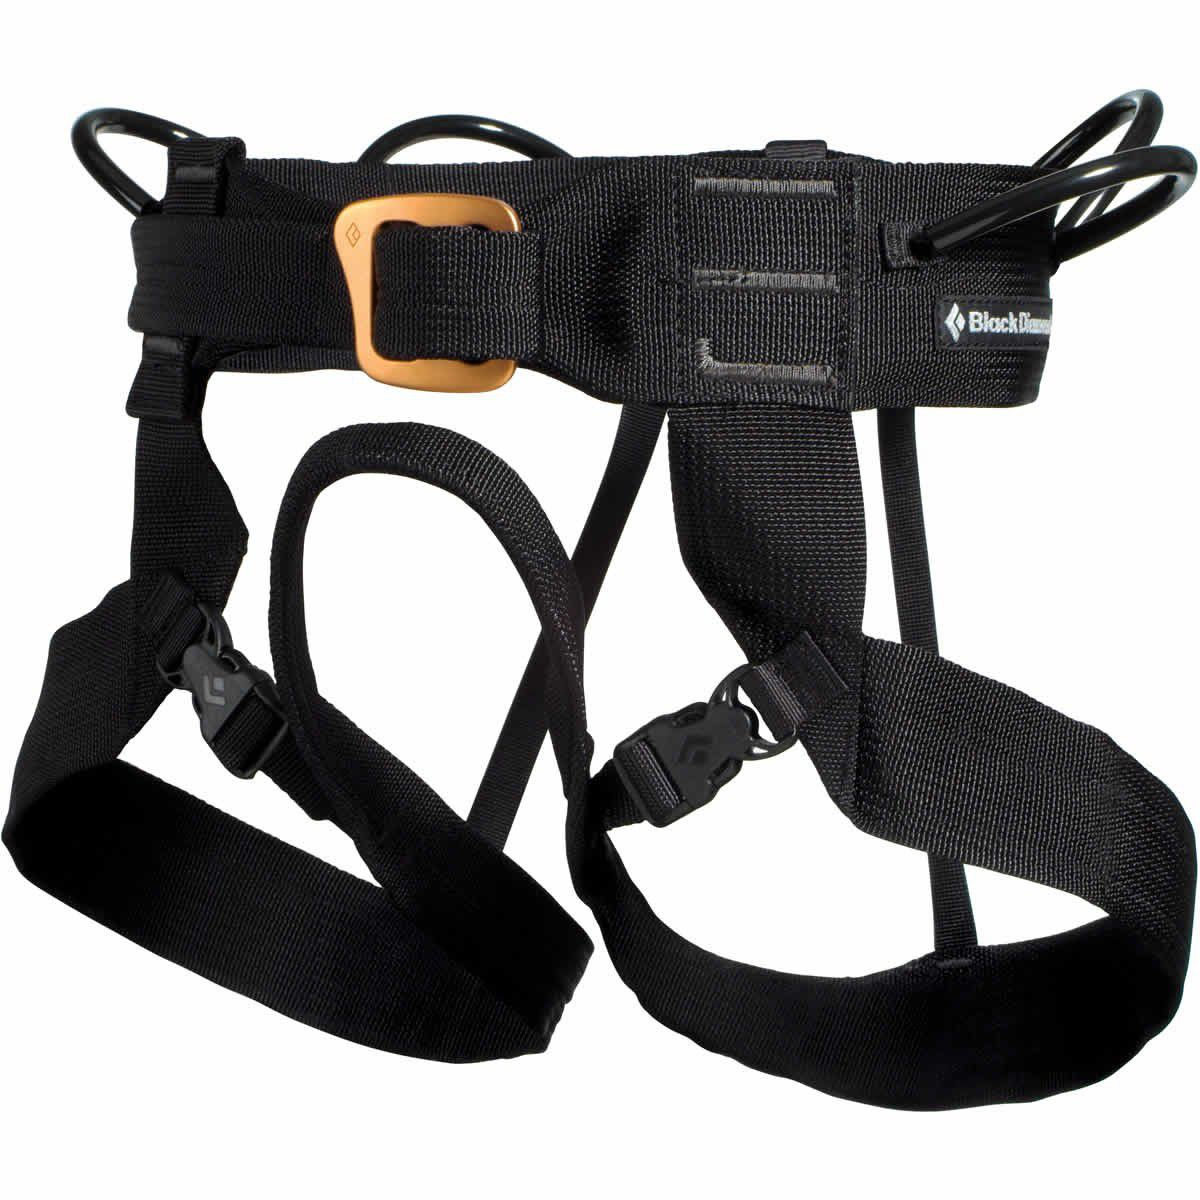 47508436 1 zoom?1490264131 black diamond alpine bod harness buy online in south africa alpine harness at bayanpartner.co